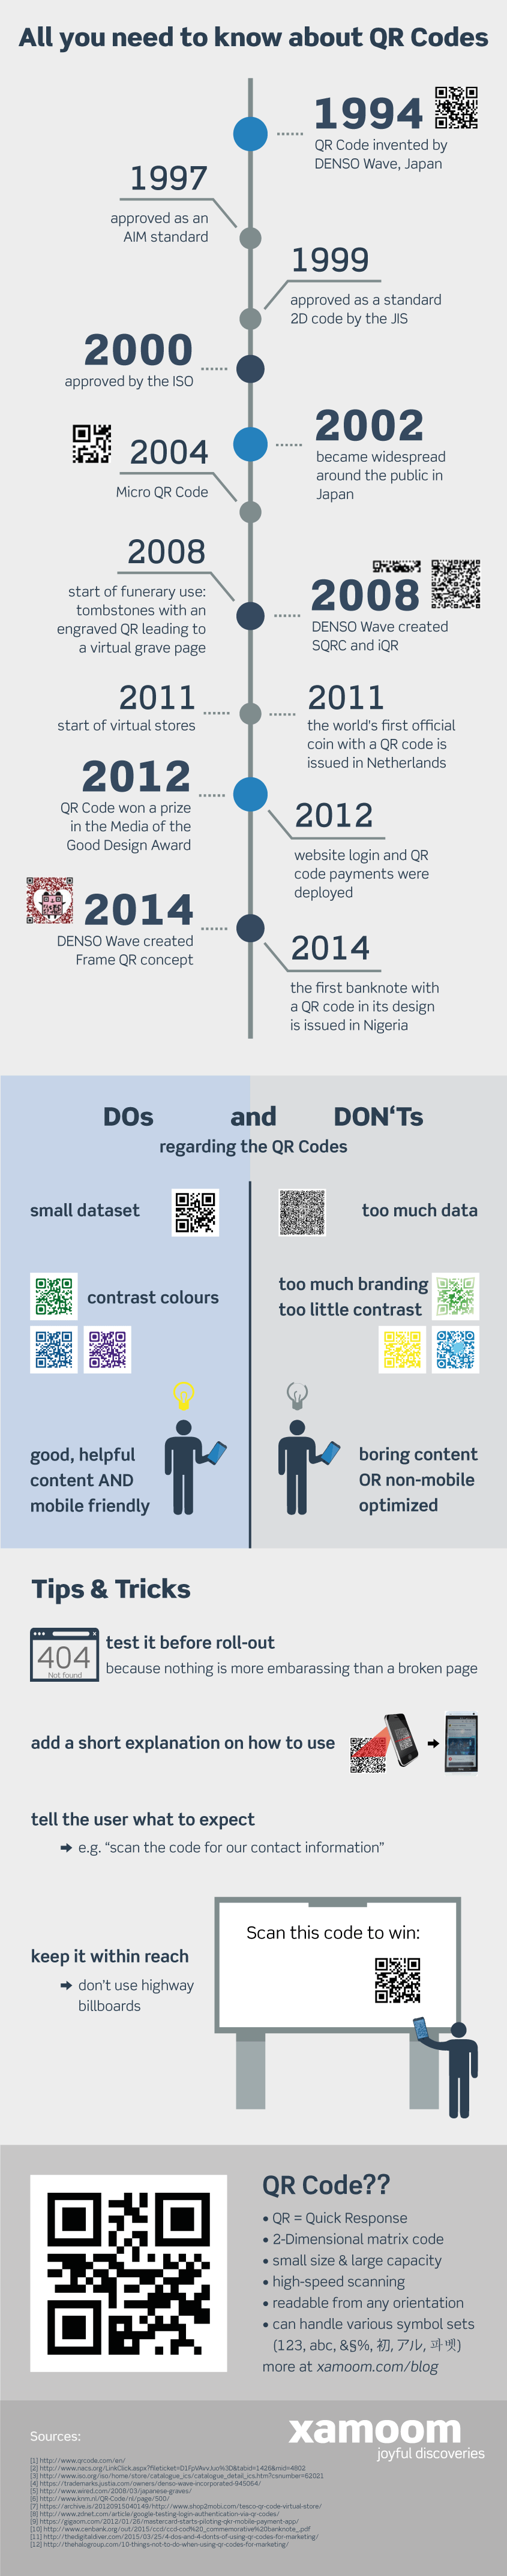 An extensive infographic about QR codes